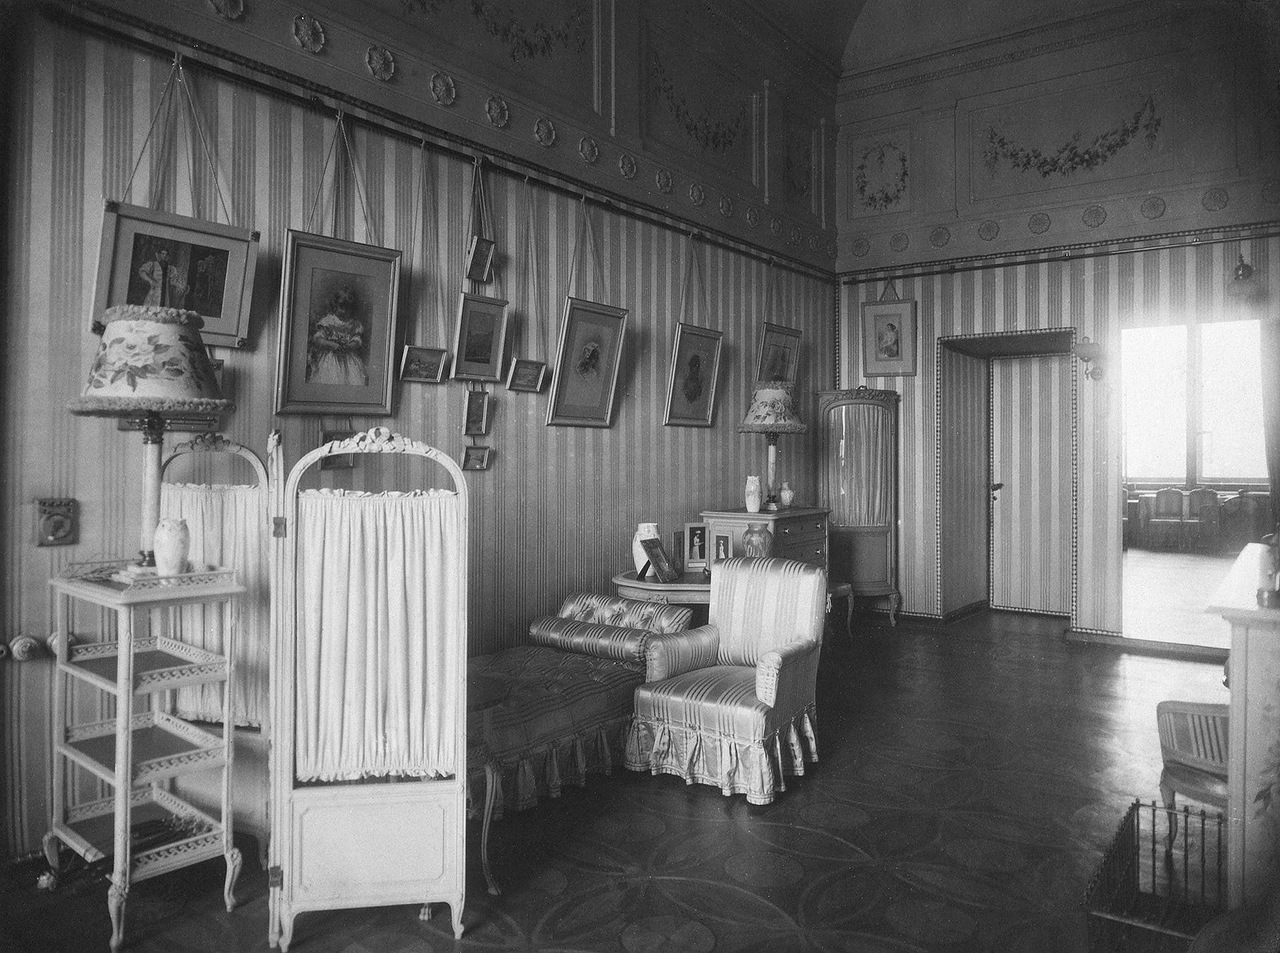 In January 1920, the State Museum of Revolution was opened in the Winter Palace. It shared the building with the State Hermitage right up until 1941. Currently, the Winter Palace and the Hermitage Museum are one of the most popular attractions for tourists from around the world. / Empress Alexandra Fedorovna's bedroom.